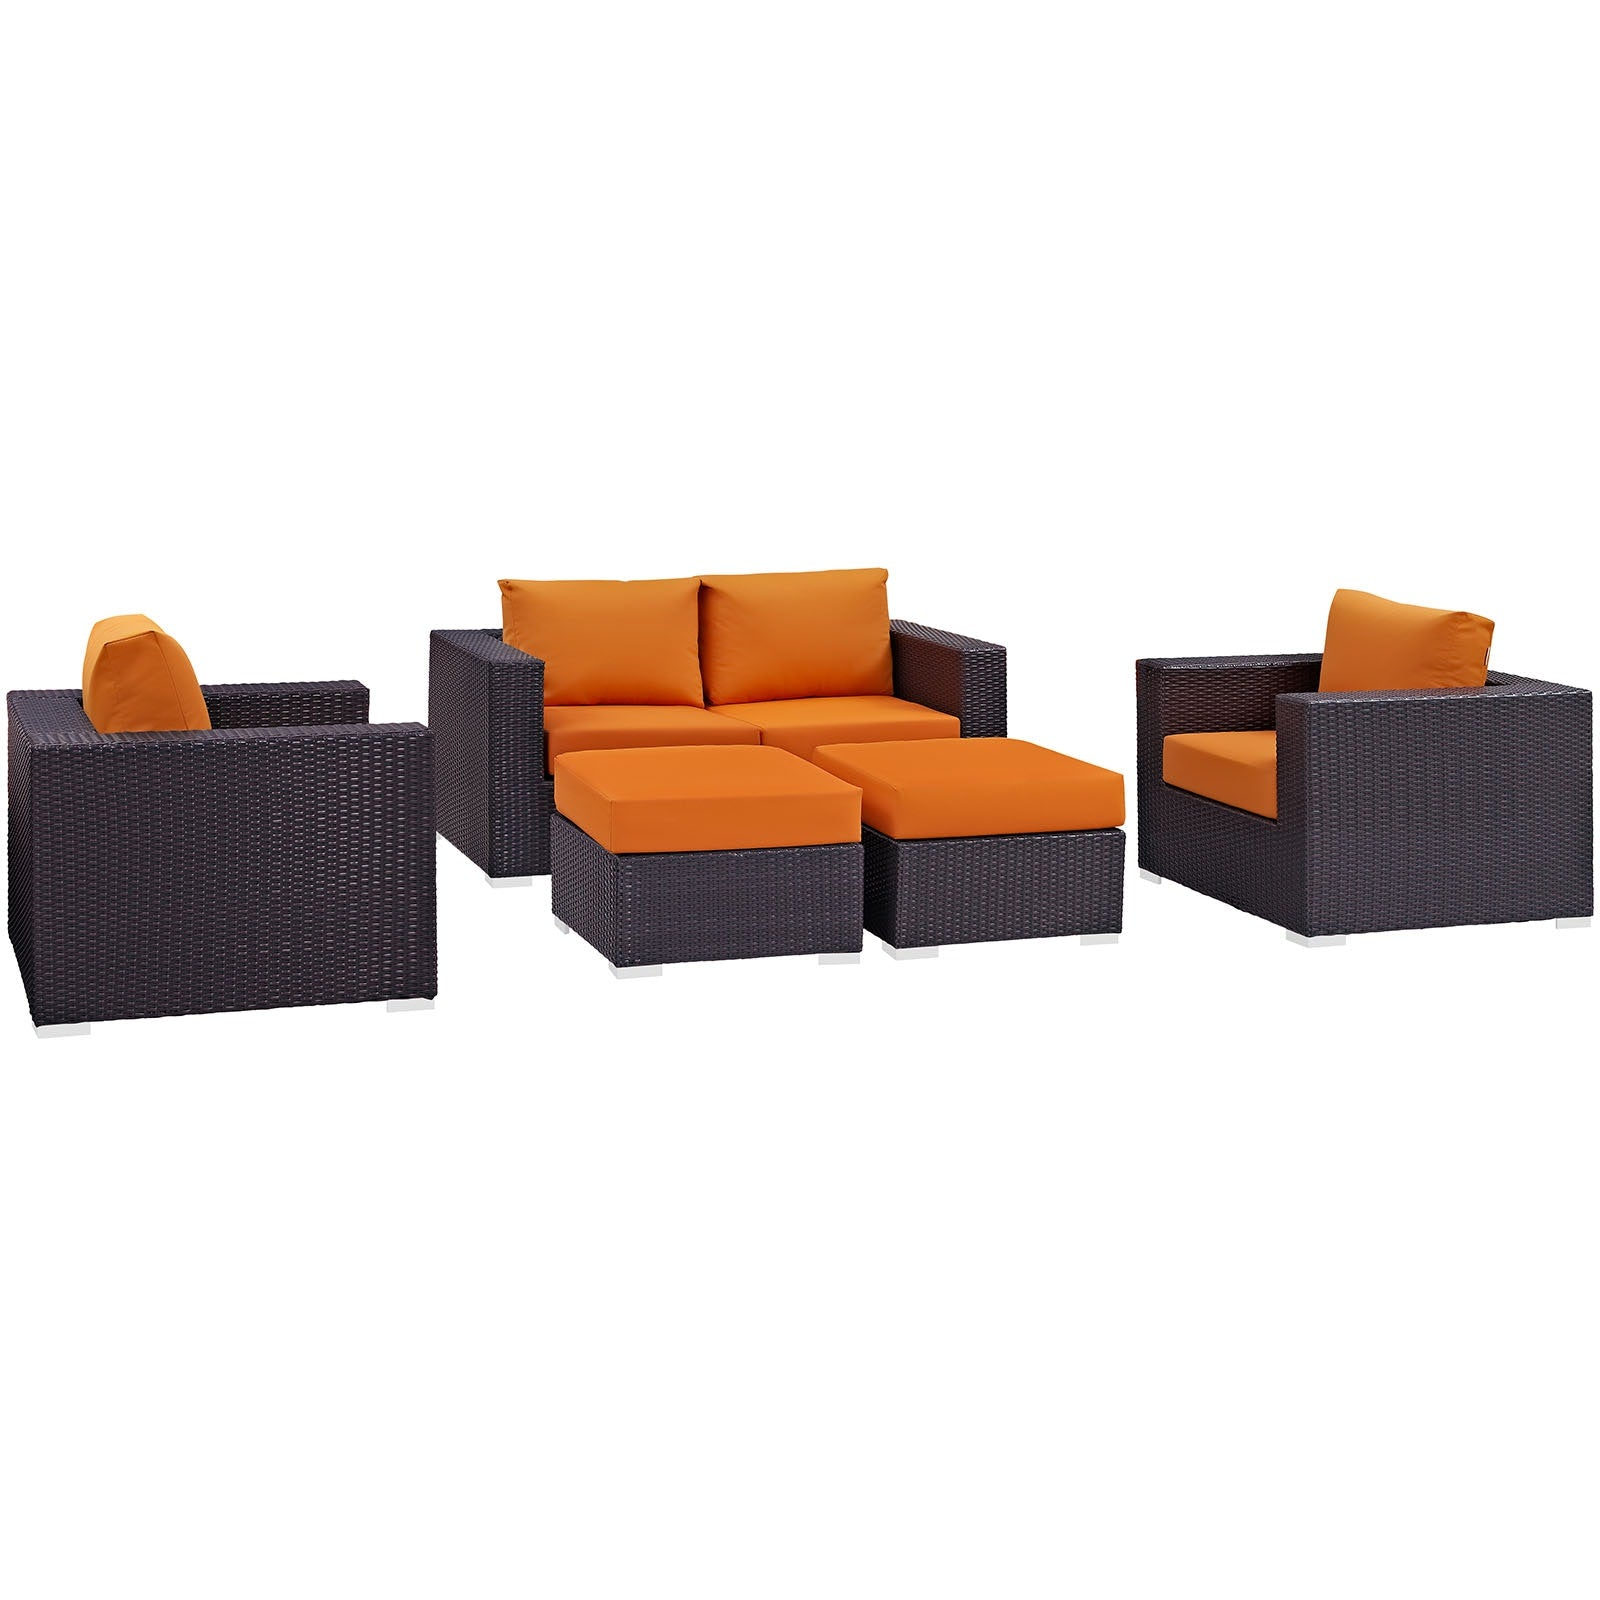 Convene 5 Piece Outdoor Patio Sofa Set - Espresso Orange